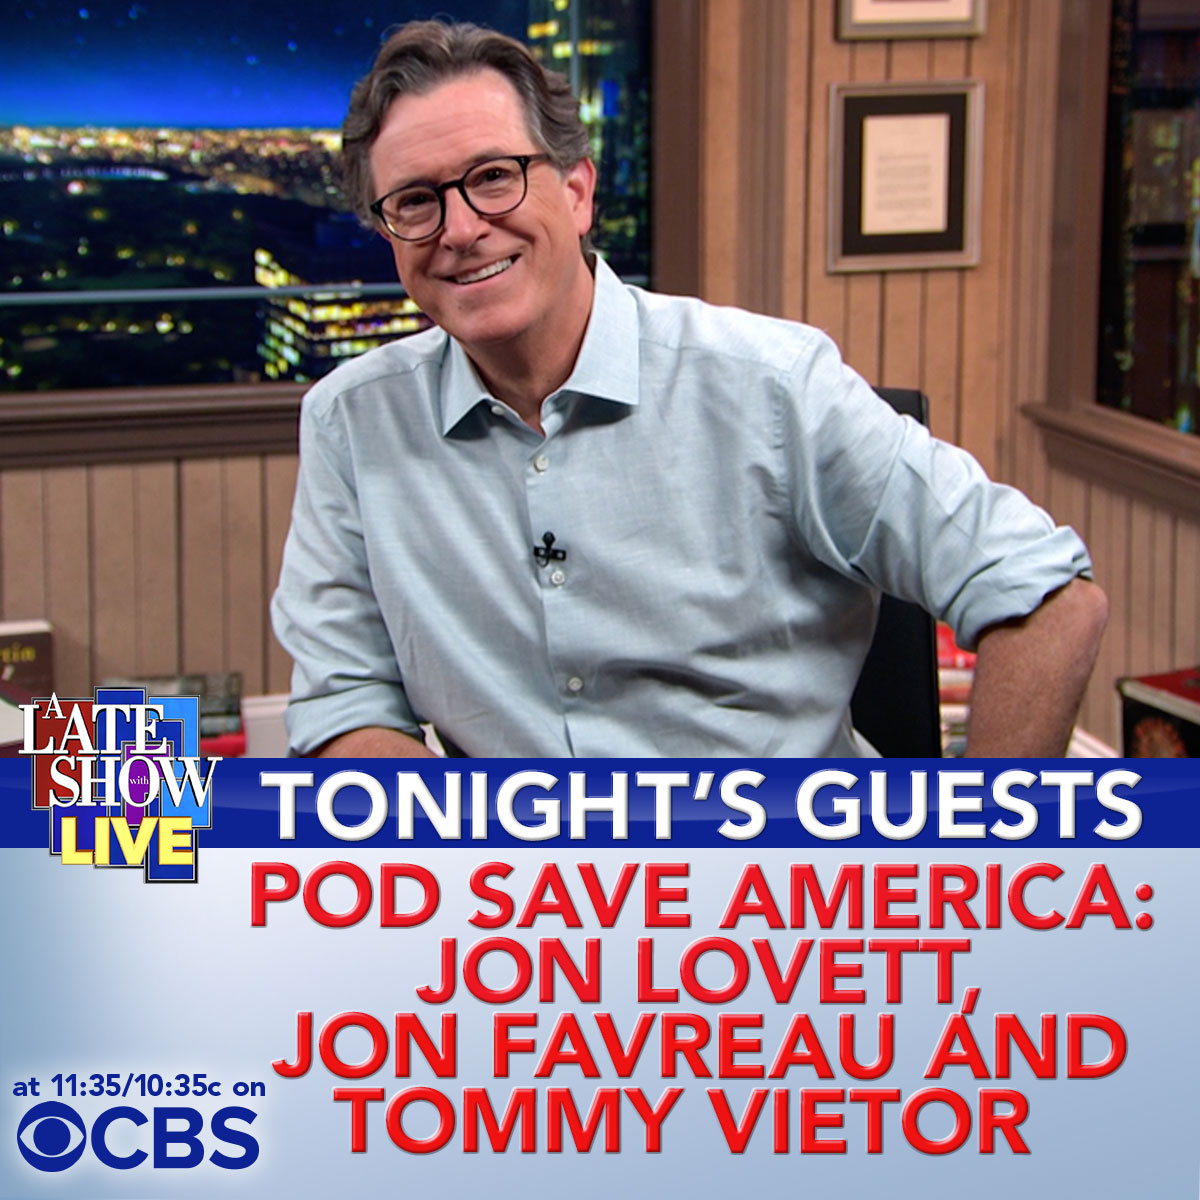 "TONIGHT: We got a LIVE show! We welcome the hosts of @PodSaveAmerica, @jonfavs, @tvietor08 & @jonlovett! Then a special musical performance of ""Together"" by Peter Cottontale, @chancetherapper, Cynthia Erivo, @ChiYSO, Chicago Children's Choir & @imnotkofi! #LateShowLIVE"